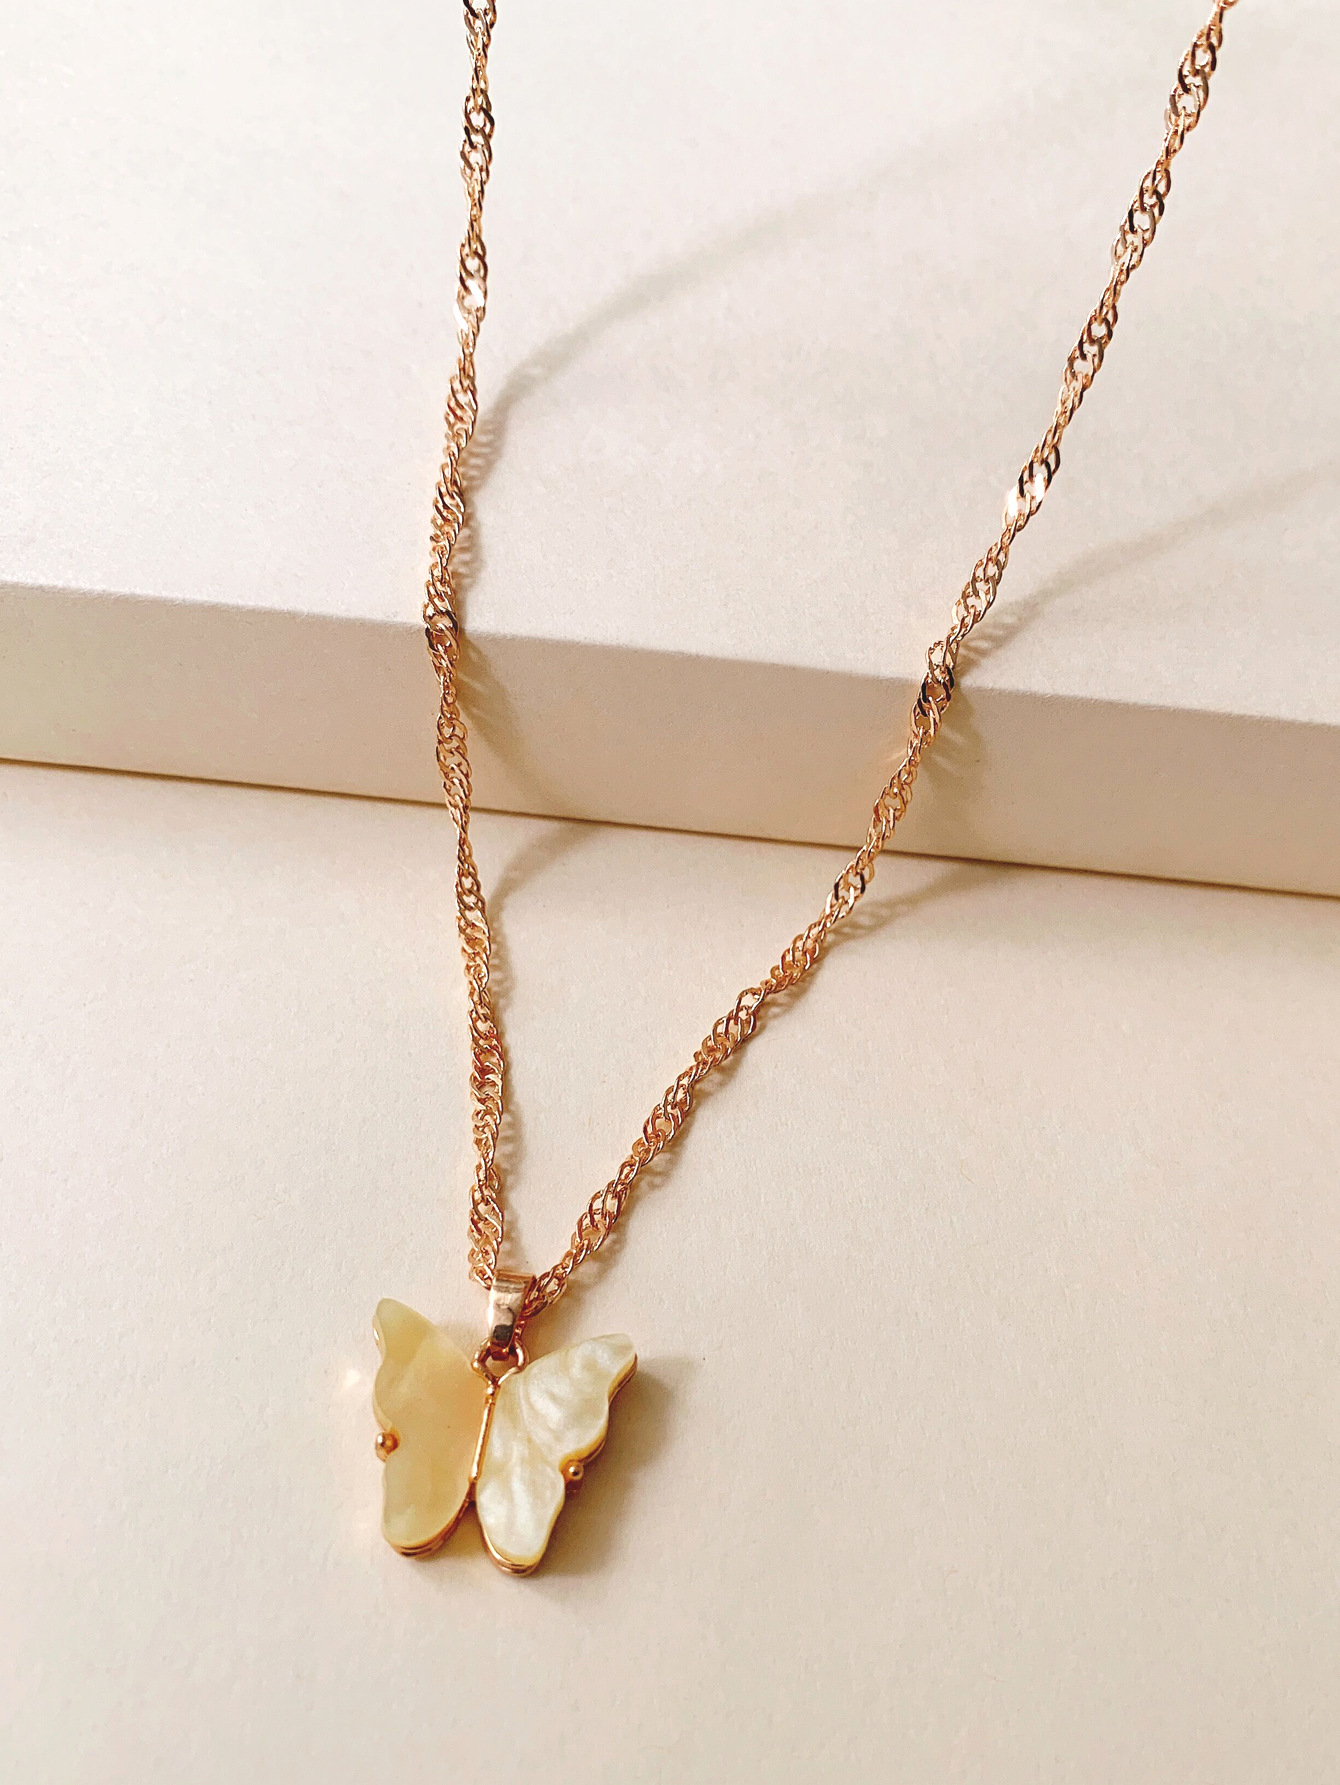 Korean new butterfly neck chain explosion models niche design insect necklace wholesale nihaojewelry NHUI221101